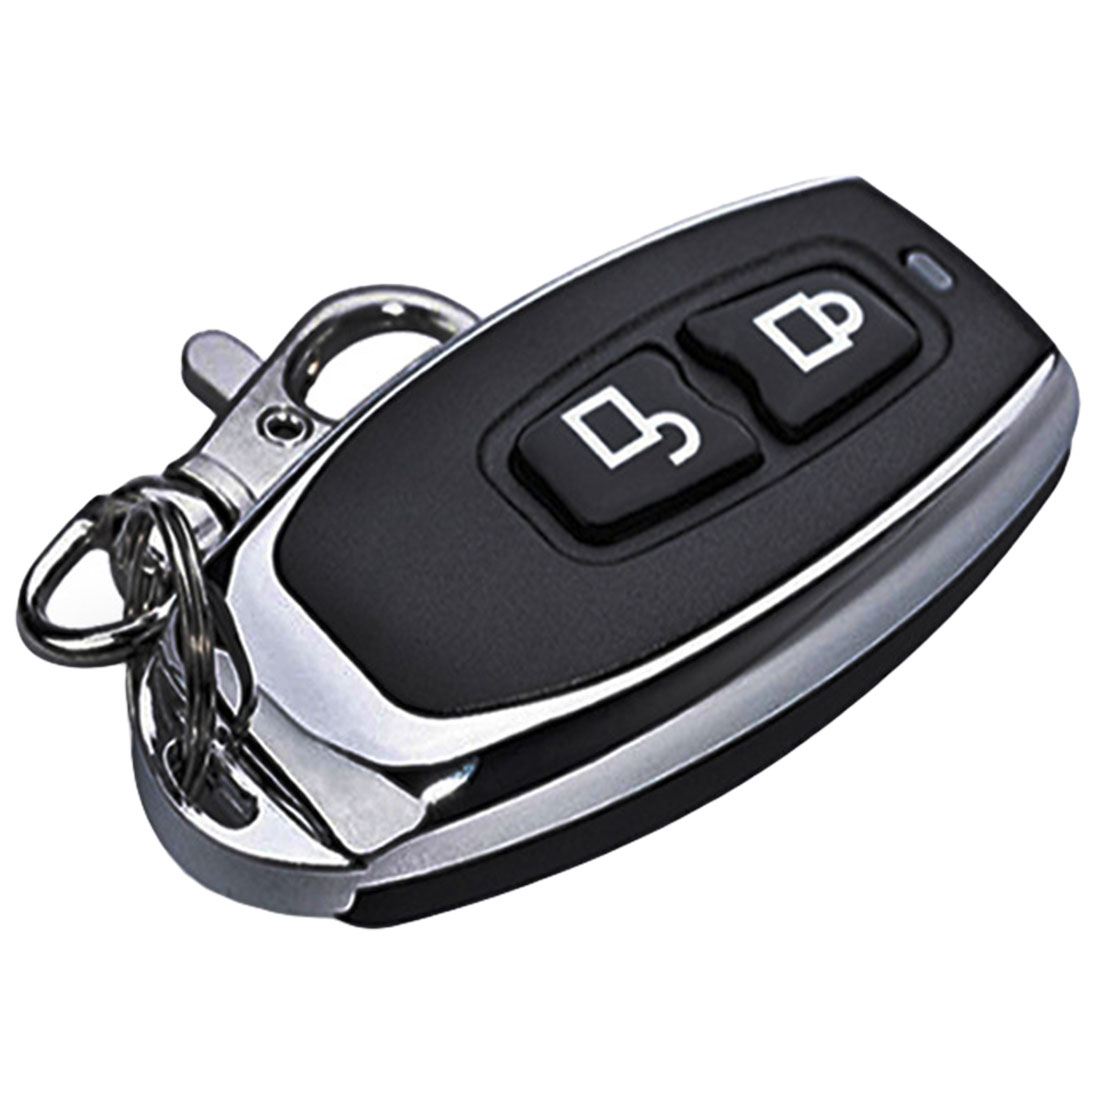 2-Button Wireless 150m <font><b>Remote</b></font> <font><b>Control</b></font> Transmitter <font><b>315</b></font> 433 <font><b>MHz</b></font> AK-J027-02 Smart <font><b>Remote</b></font> <font><b>Control</b></font> Transmitter image